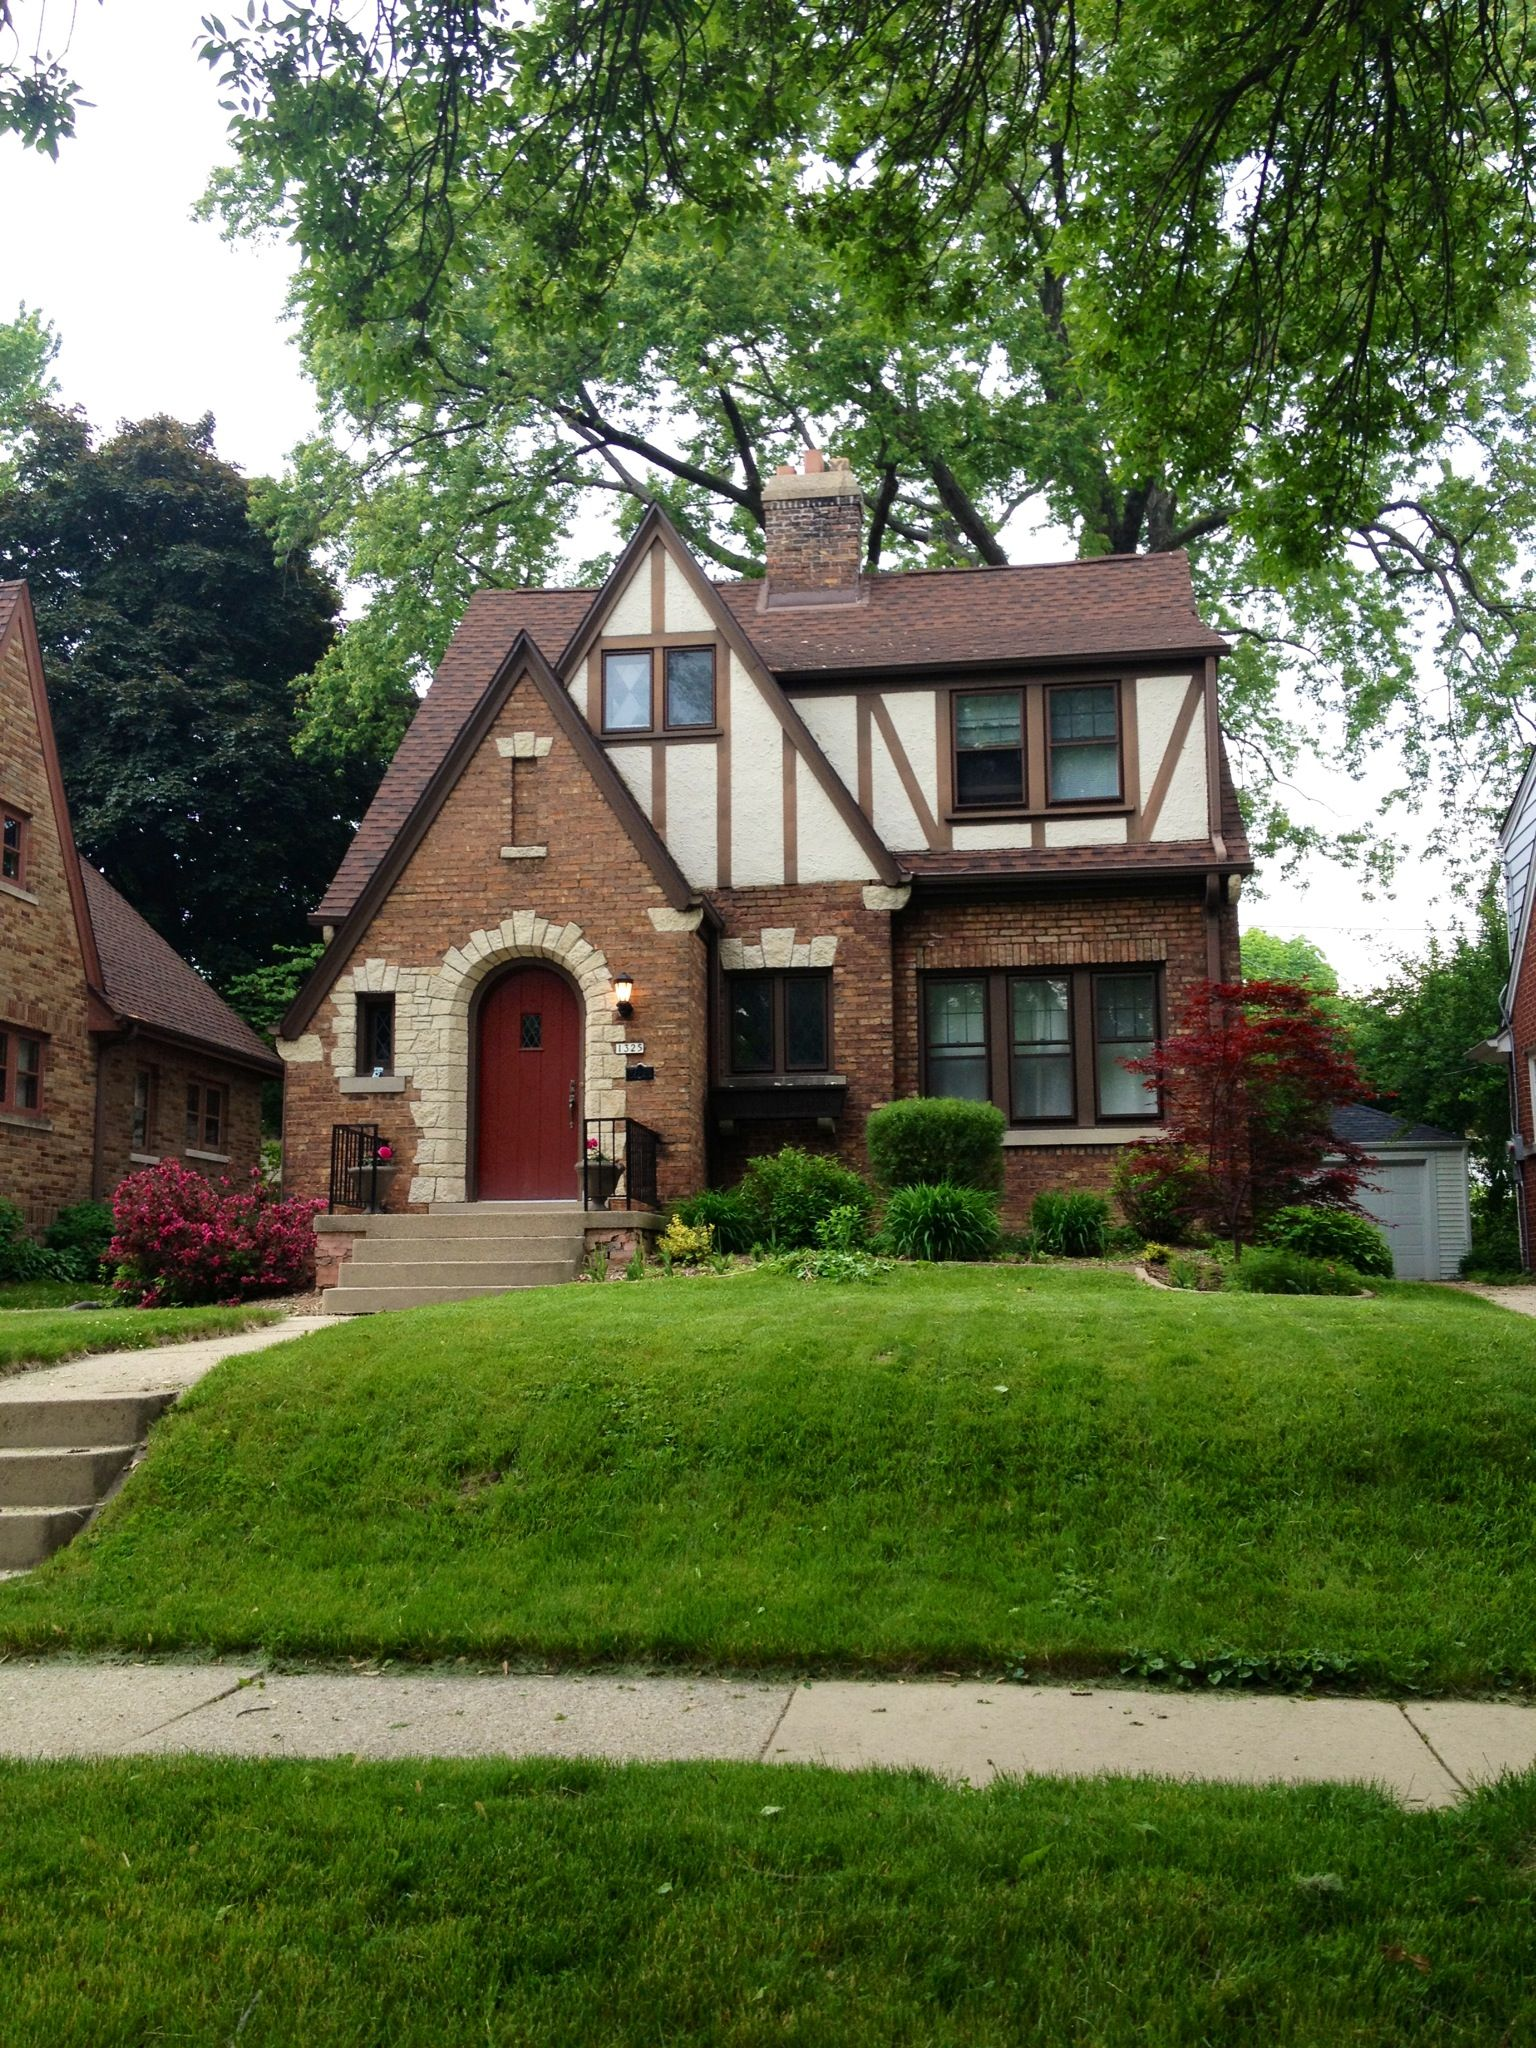 Adorable tudor style home reminds me of sugarhouse ut for English style houses architecture